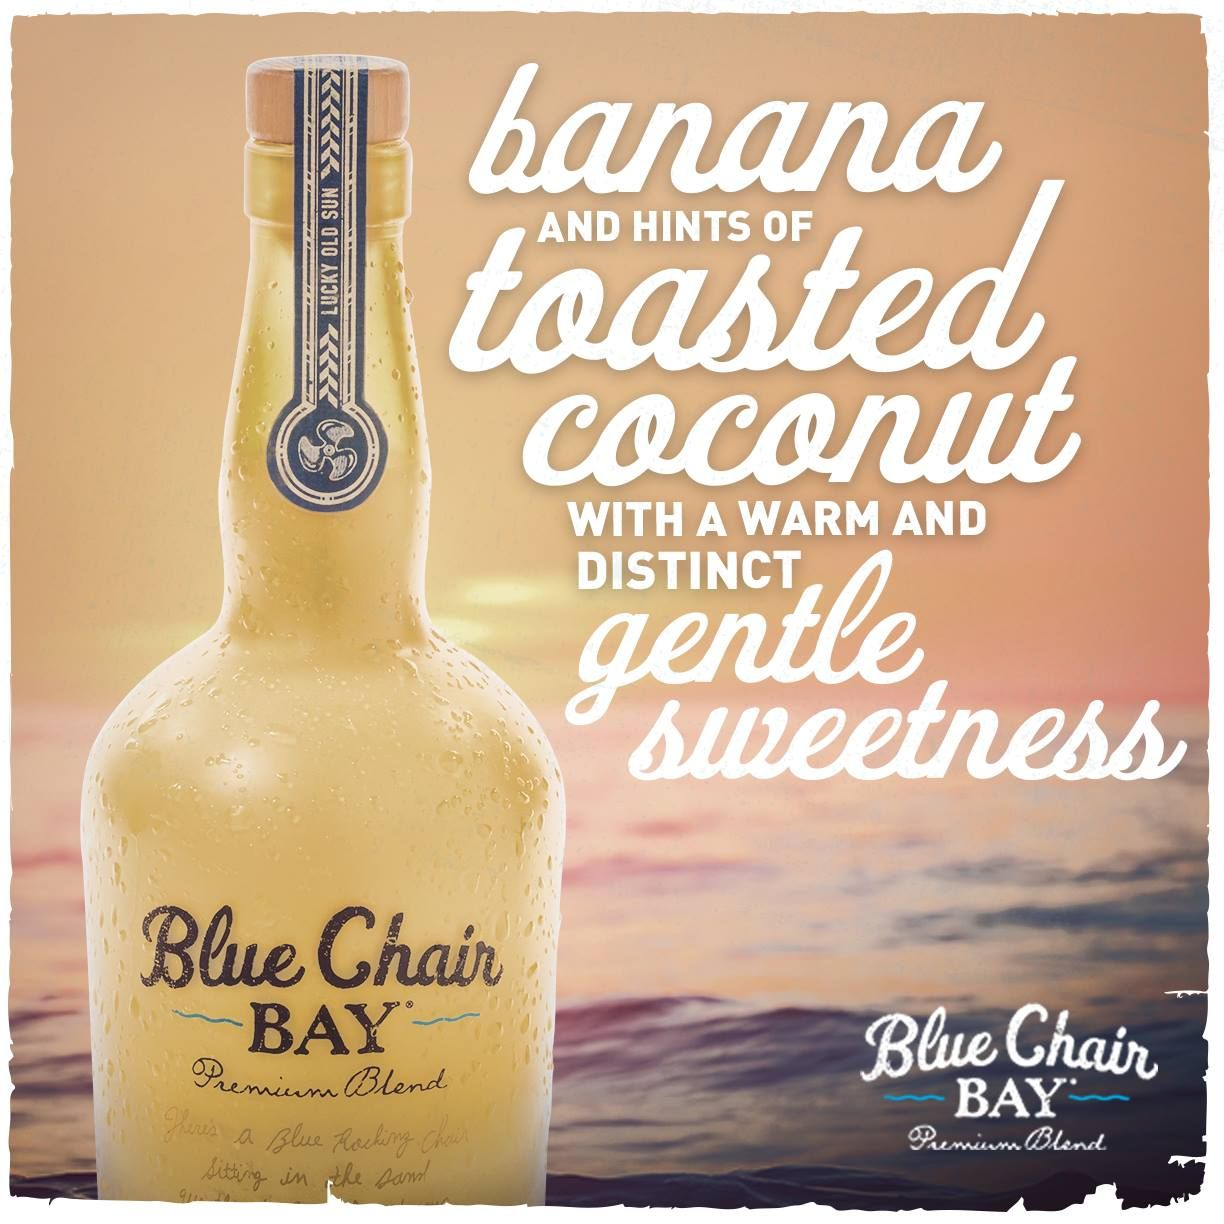 Have you tried our #BananaRumCream yet?